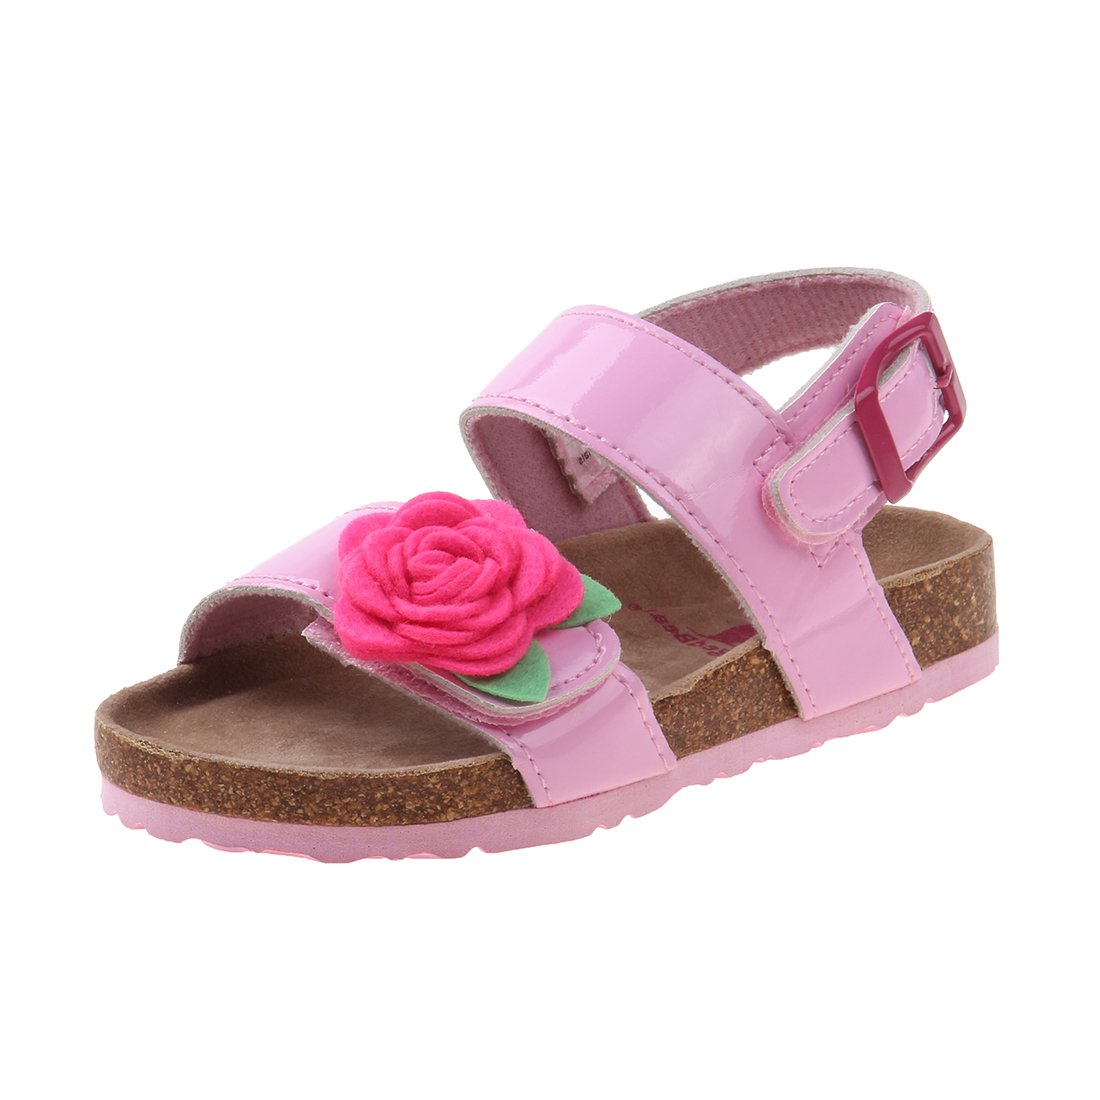 Rugged Bear Girls Cork Sandal with Flower, Pink Patent, 7 M US Toddler'